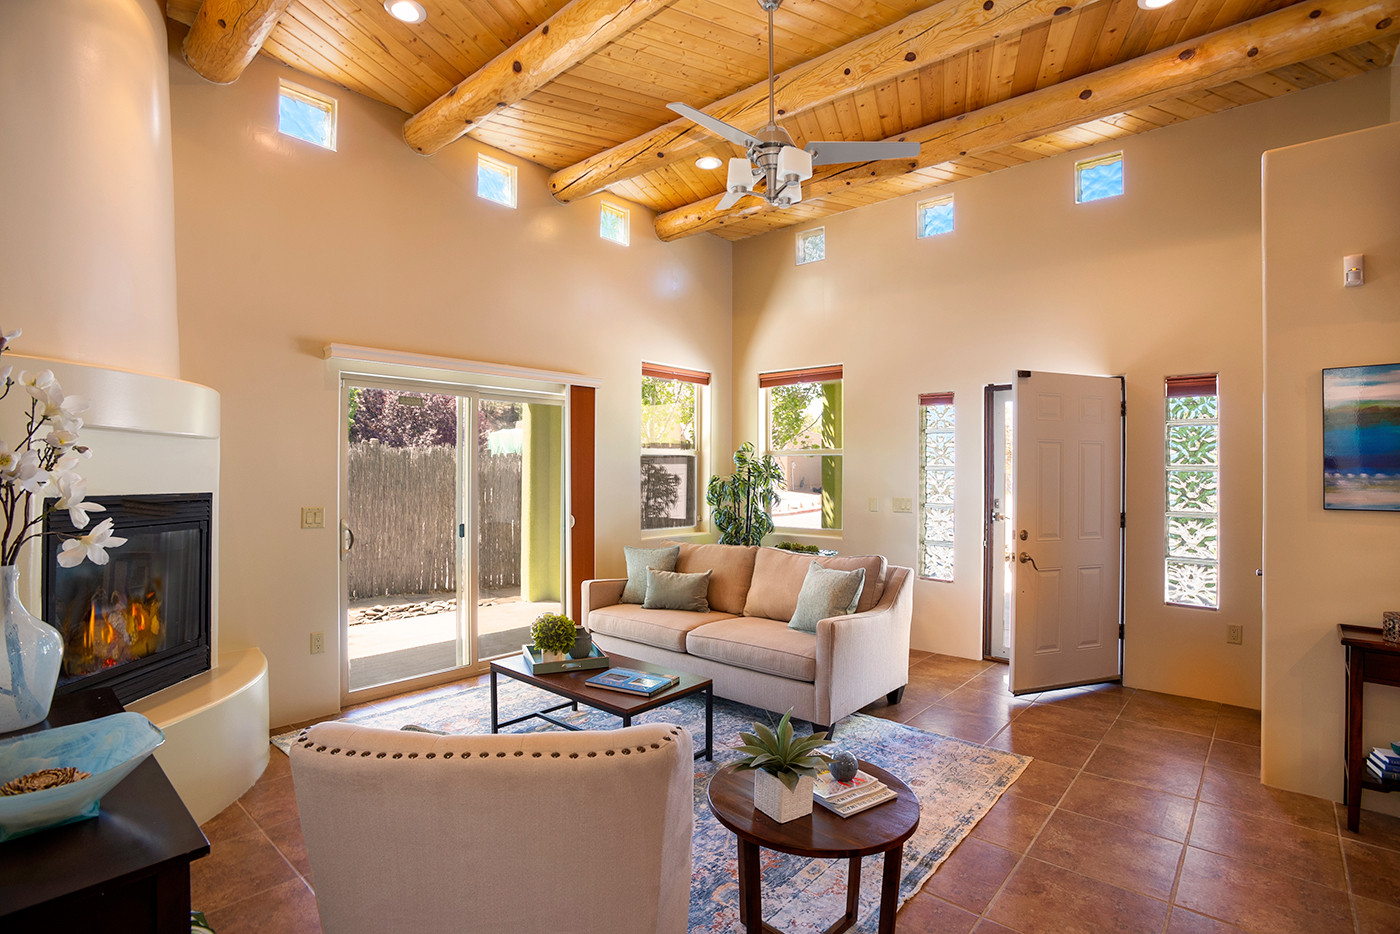 Calle Beatrice | Entrance and Patio Doors